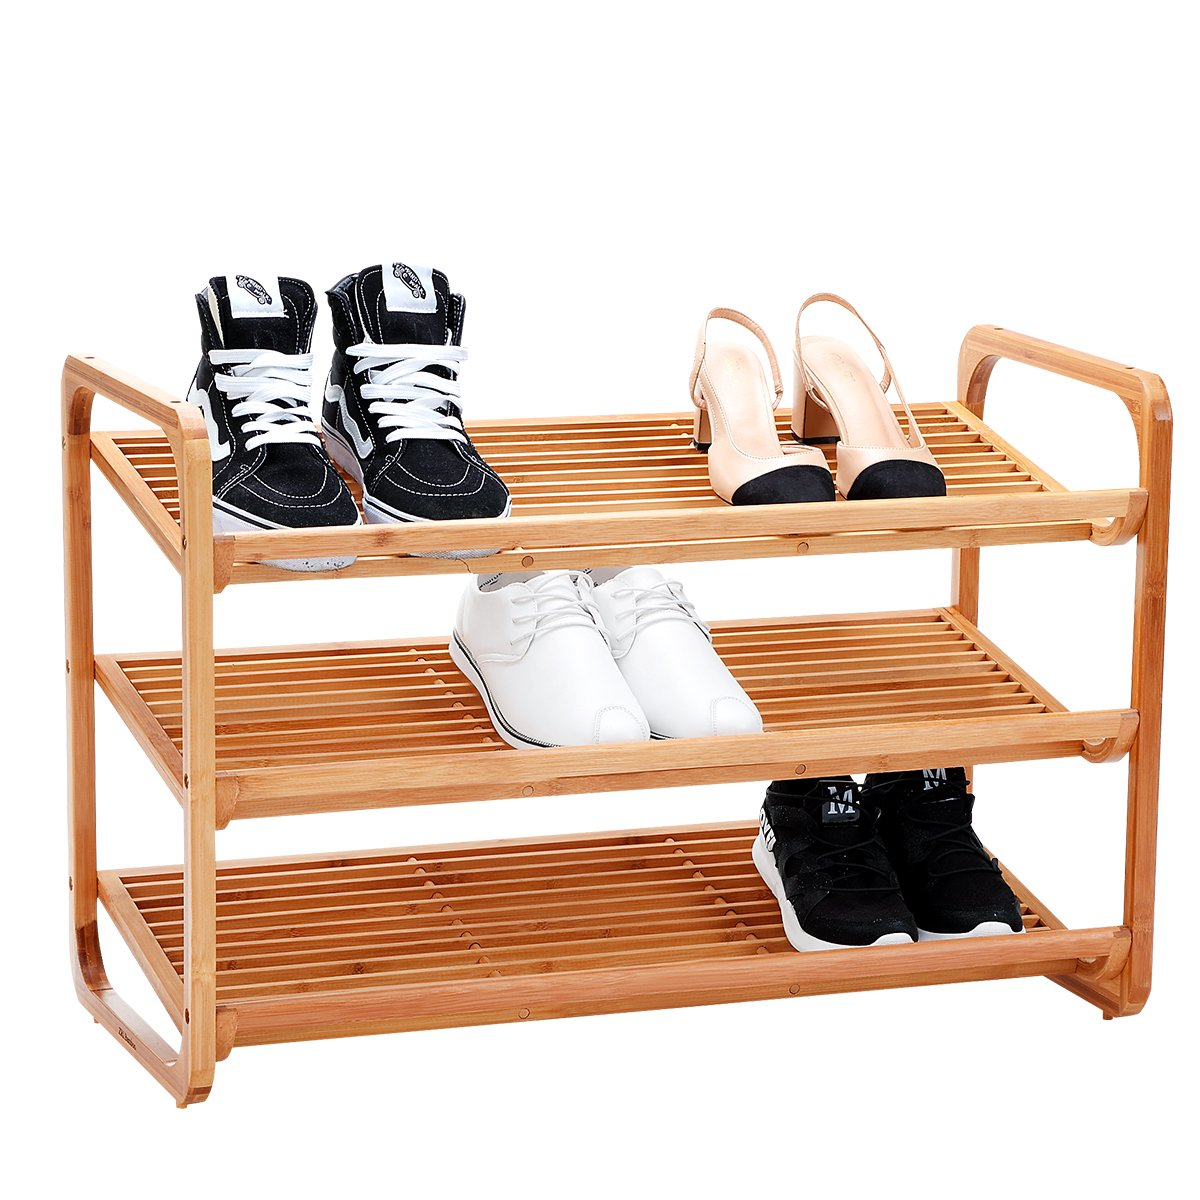 New Ridge Home Goods HX-710382 Natural Bamboo Shoe Boot Organizing Rack, Entryway Seat with Storage Shelf, Hallway Furniture Bench, by New Ridge Home Goods